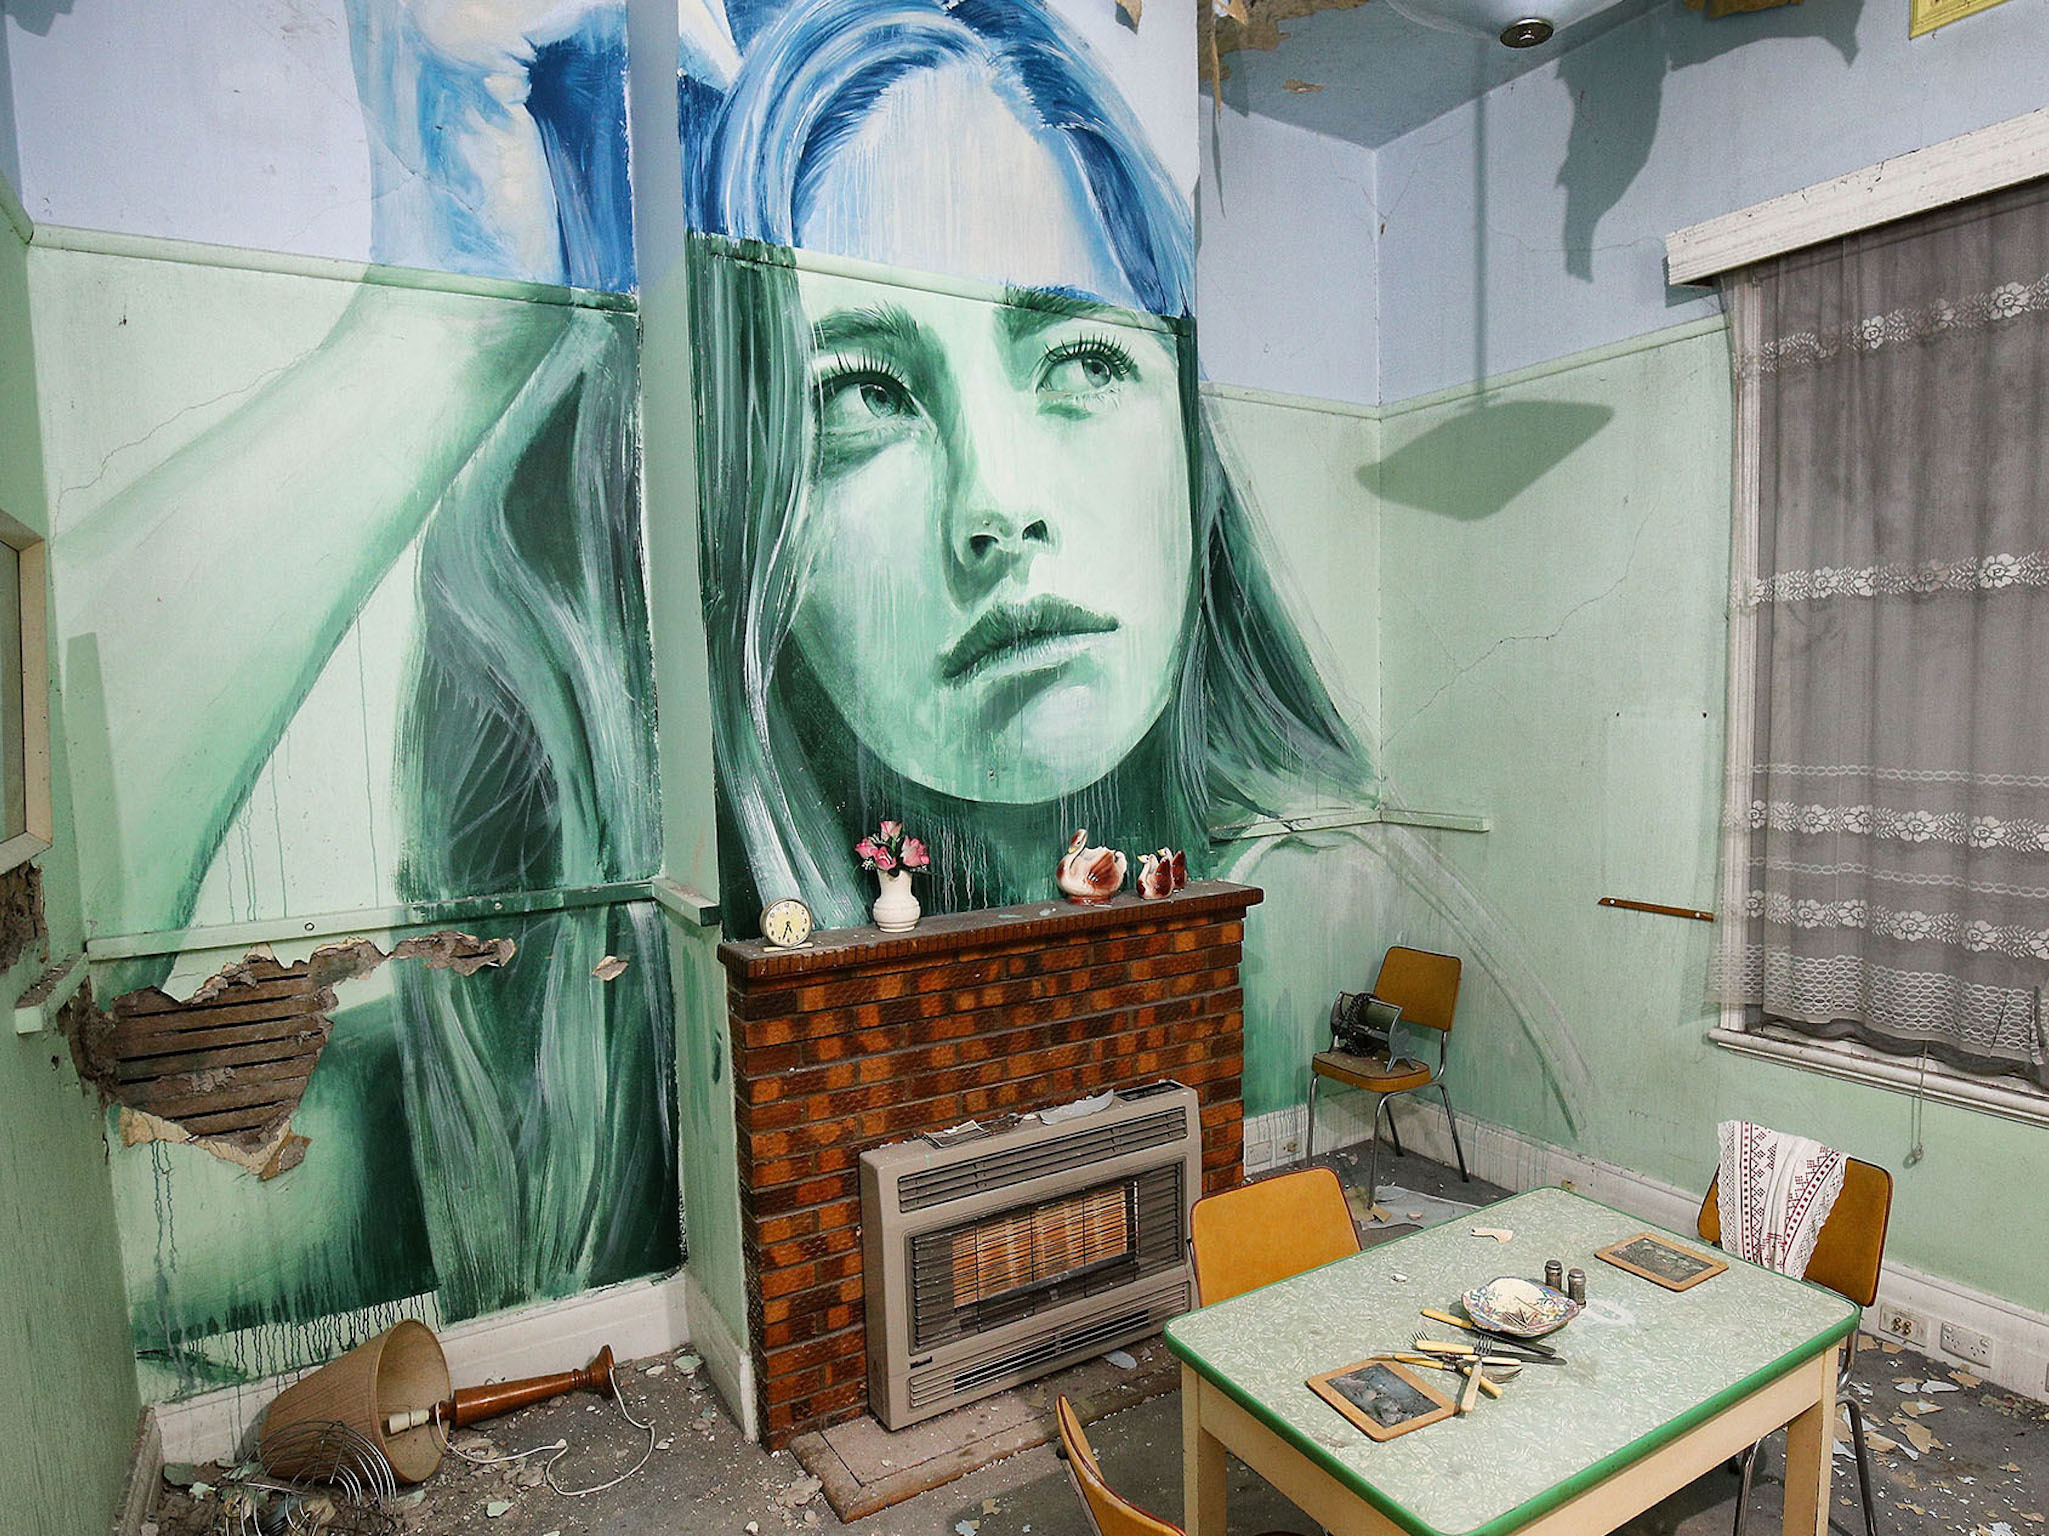 Melbourne street artist Rone has transformed an abandoned house